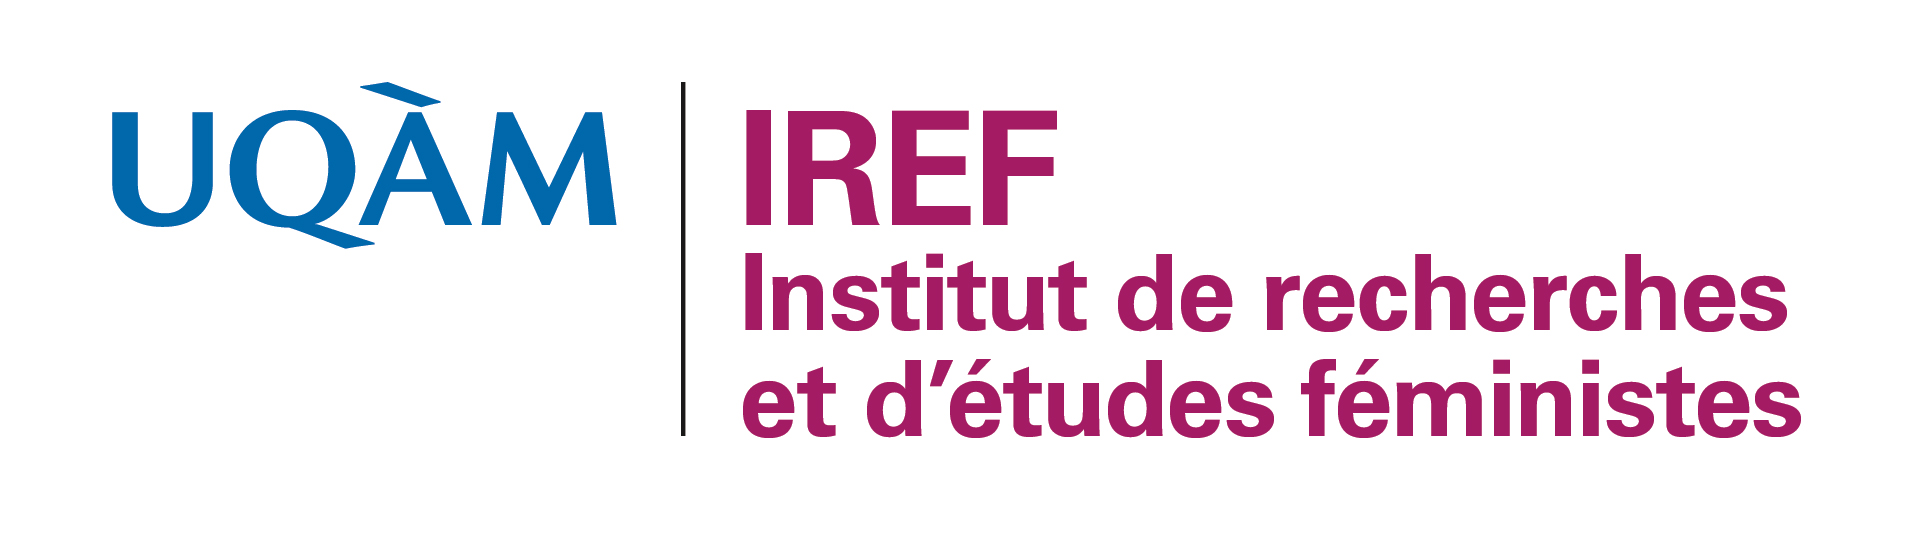 logo 2012 IREF interne COUL